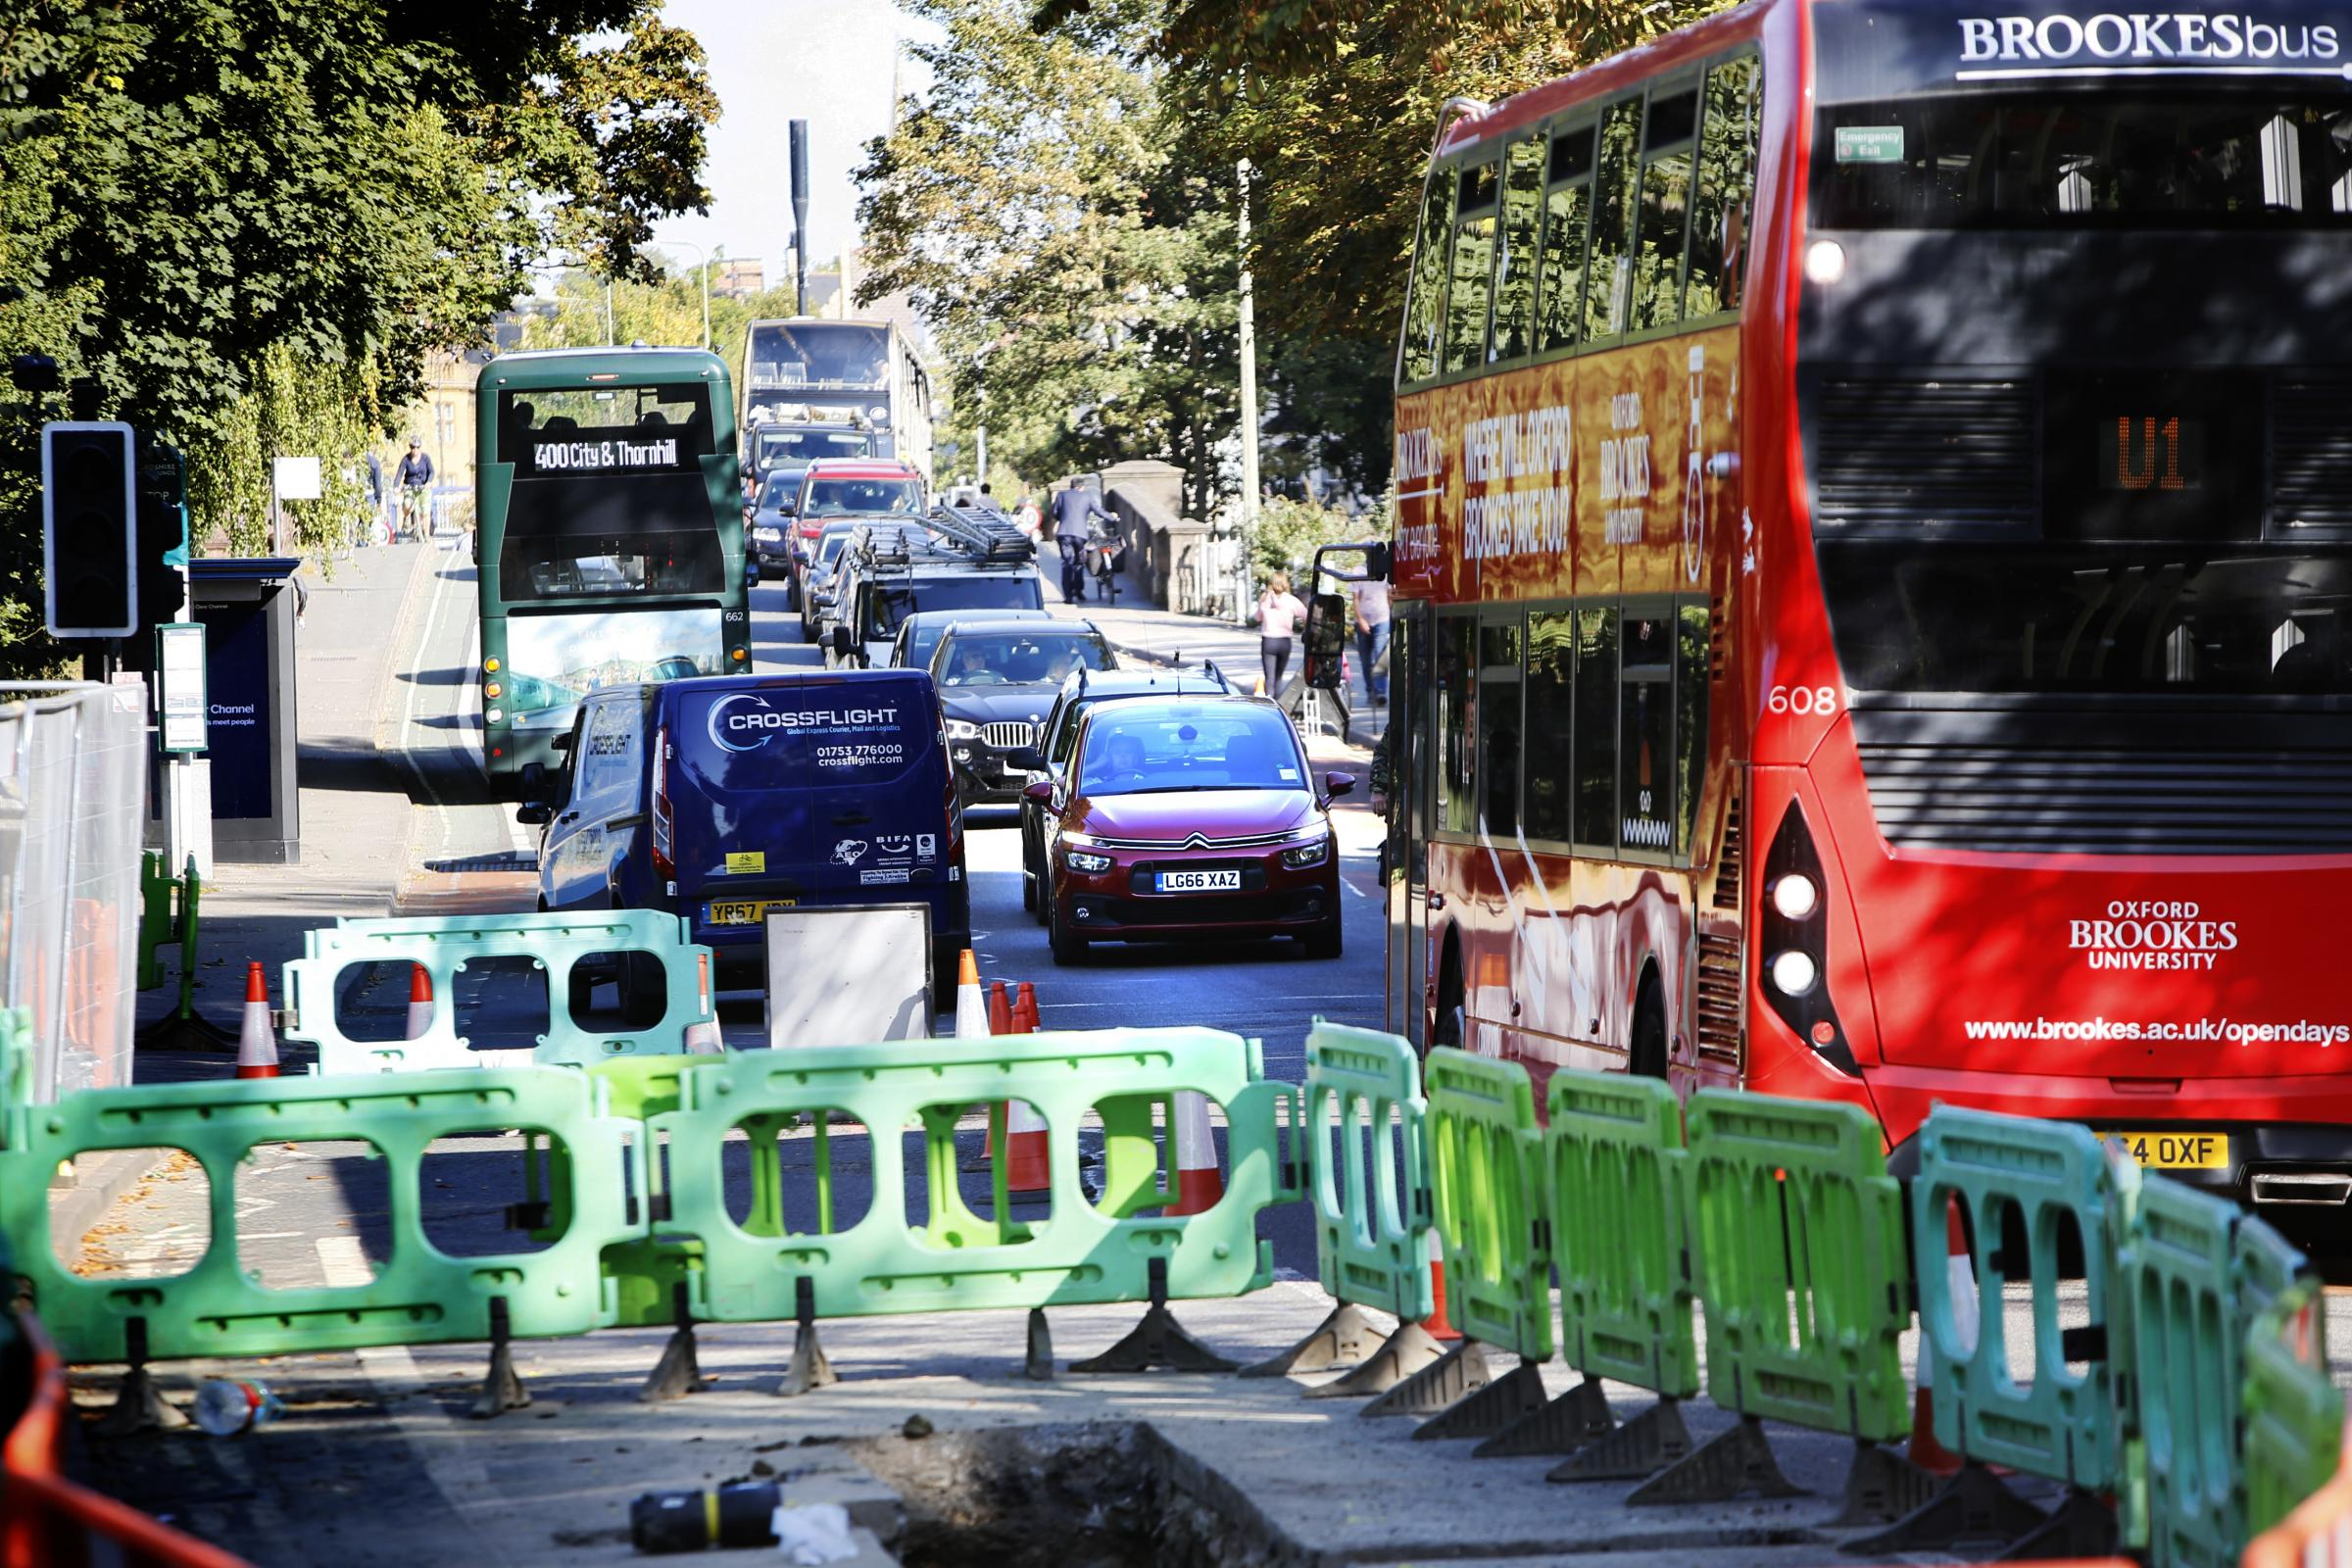 When will SGN's Botley Road works finish in Oxford?